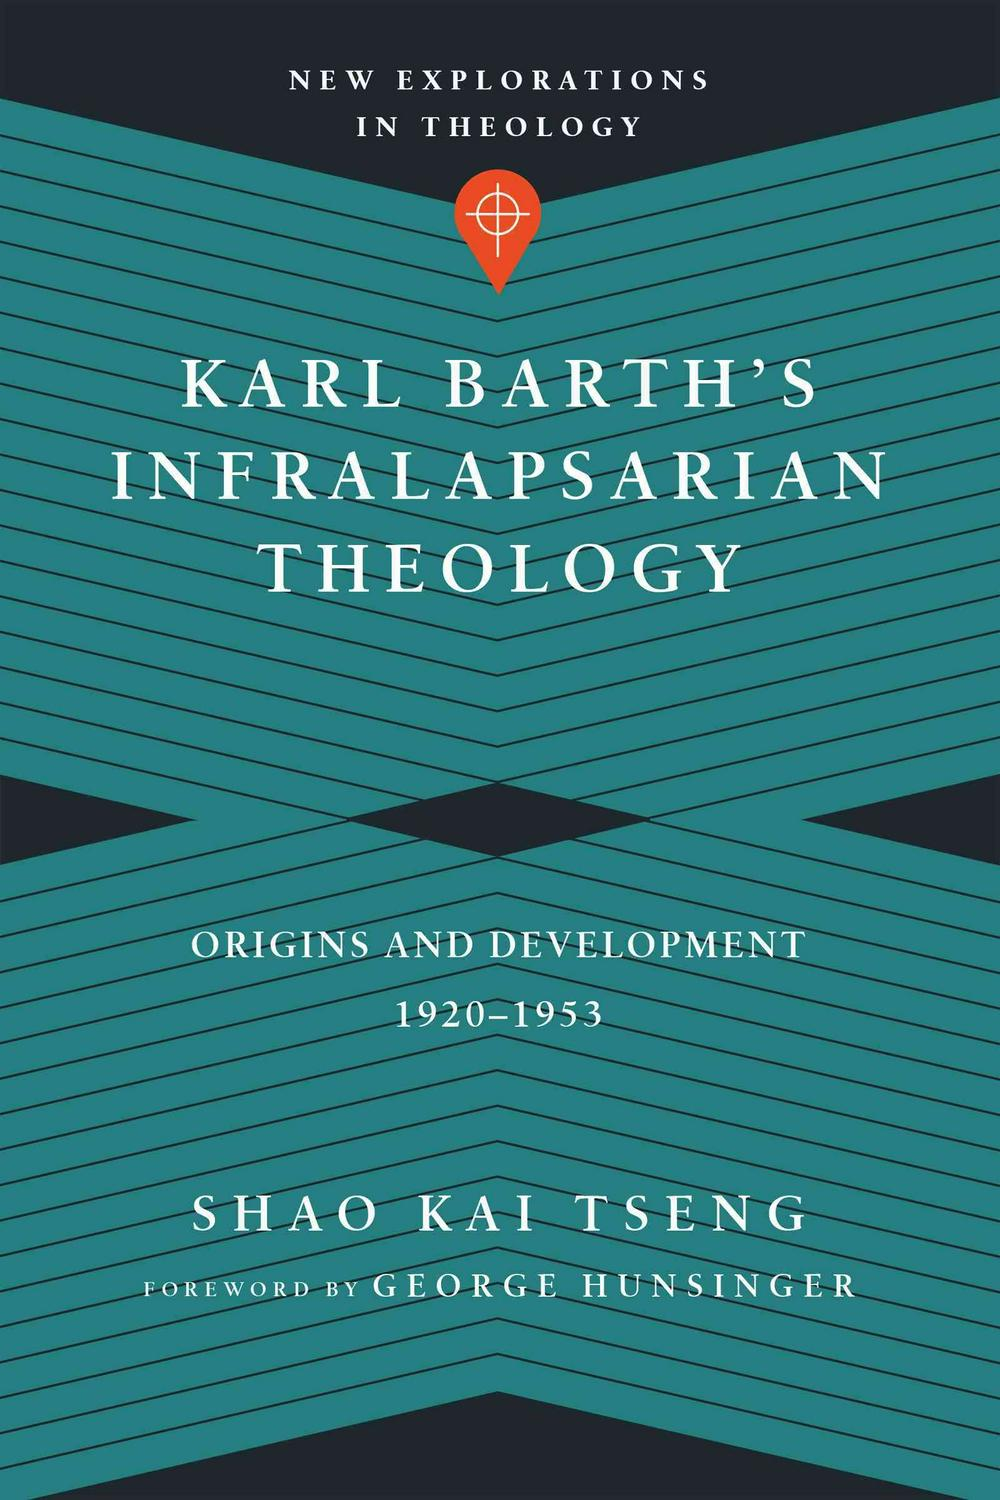 Karl Barth's Infralapsarian Theology: Origins and Development, 1920-1953 (New Explorations in Theology) by Shao Kai Tseng, ISBN: 9780830851324